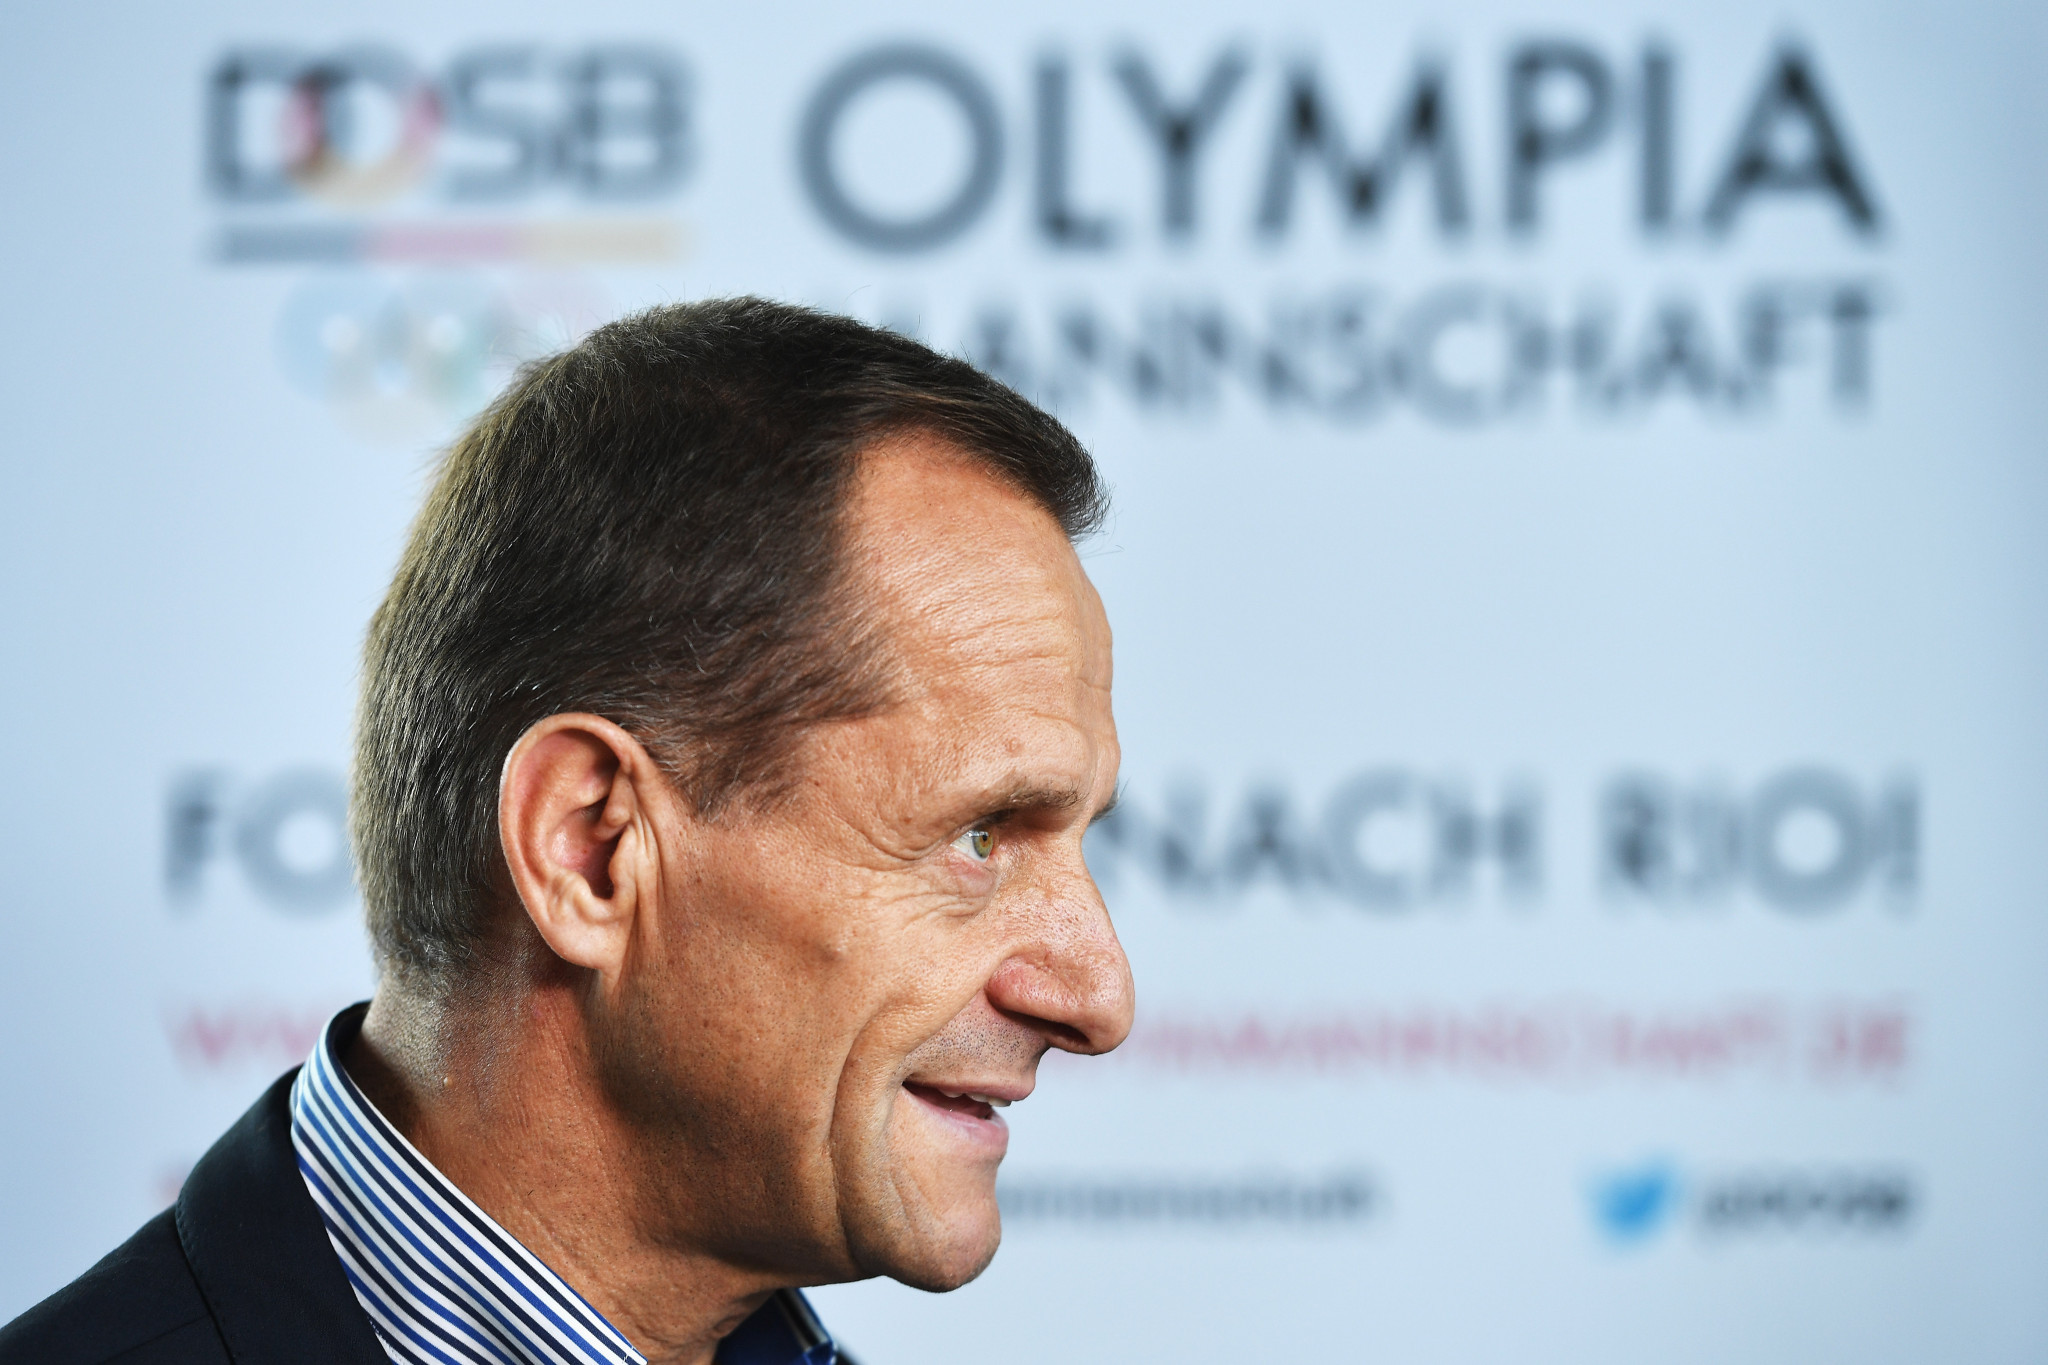 DOSB President would understand if German athletes did not compete at Pyeongchang 2018